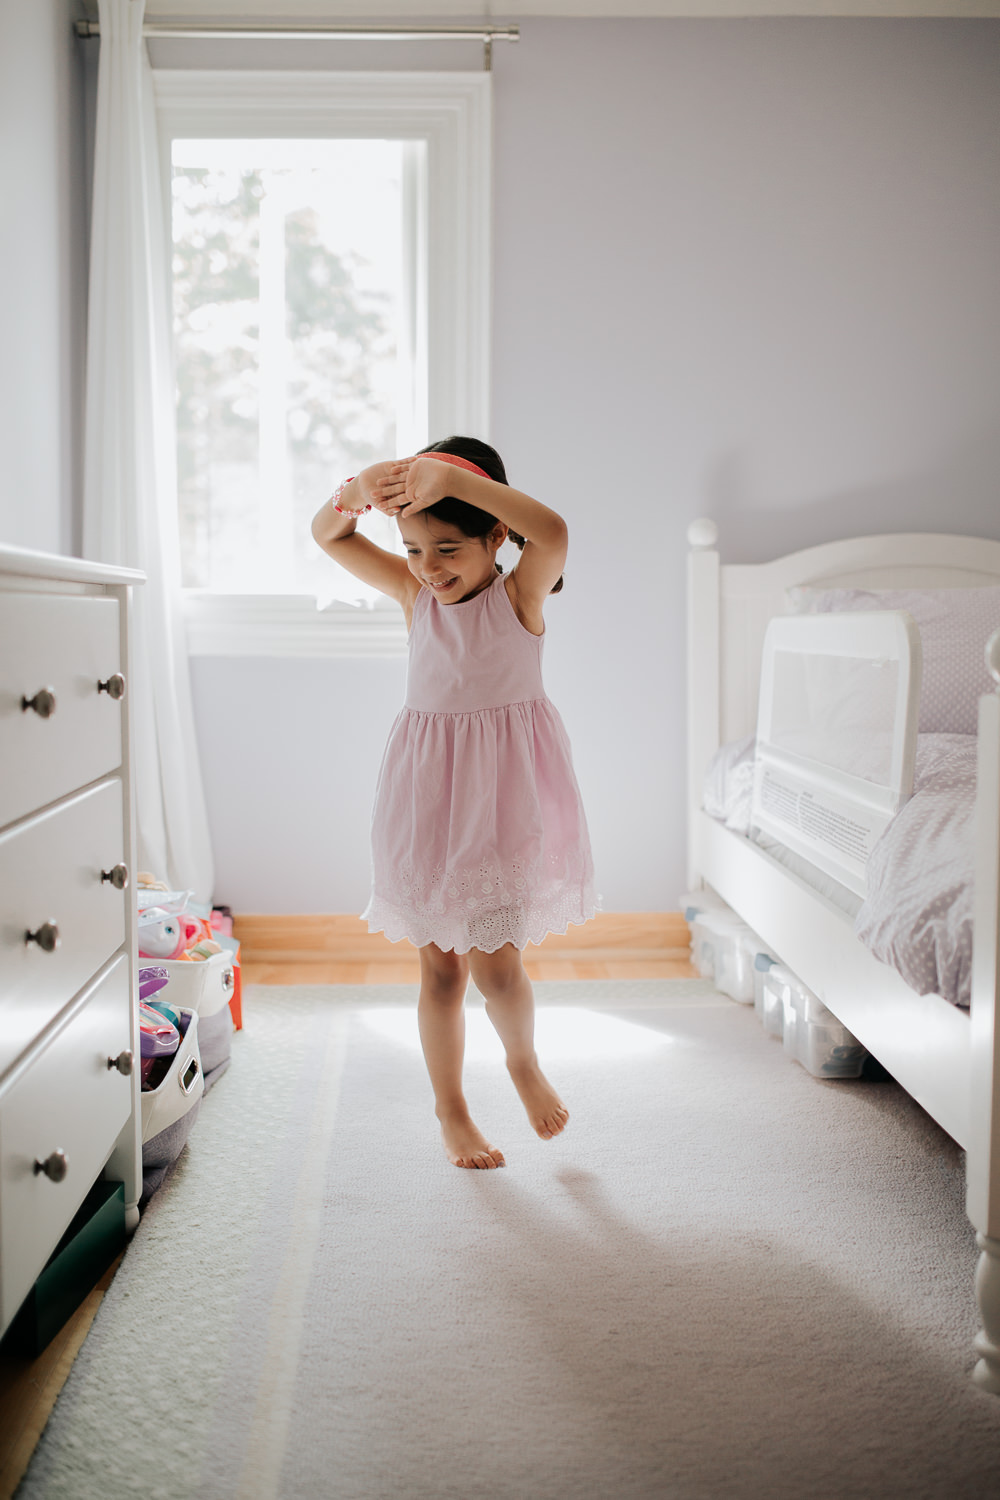 4 tear old toddler girl with dark braided pigtails in purple dress twirling like a ballerina in front of window in bedroom and smiling - Stouffville Lifestyle Photography